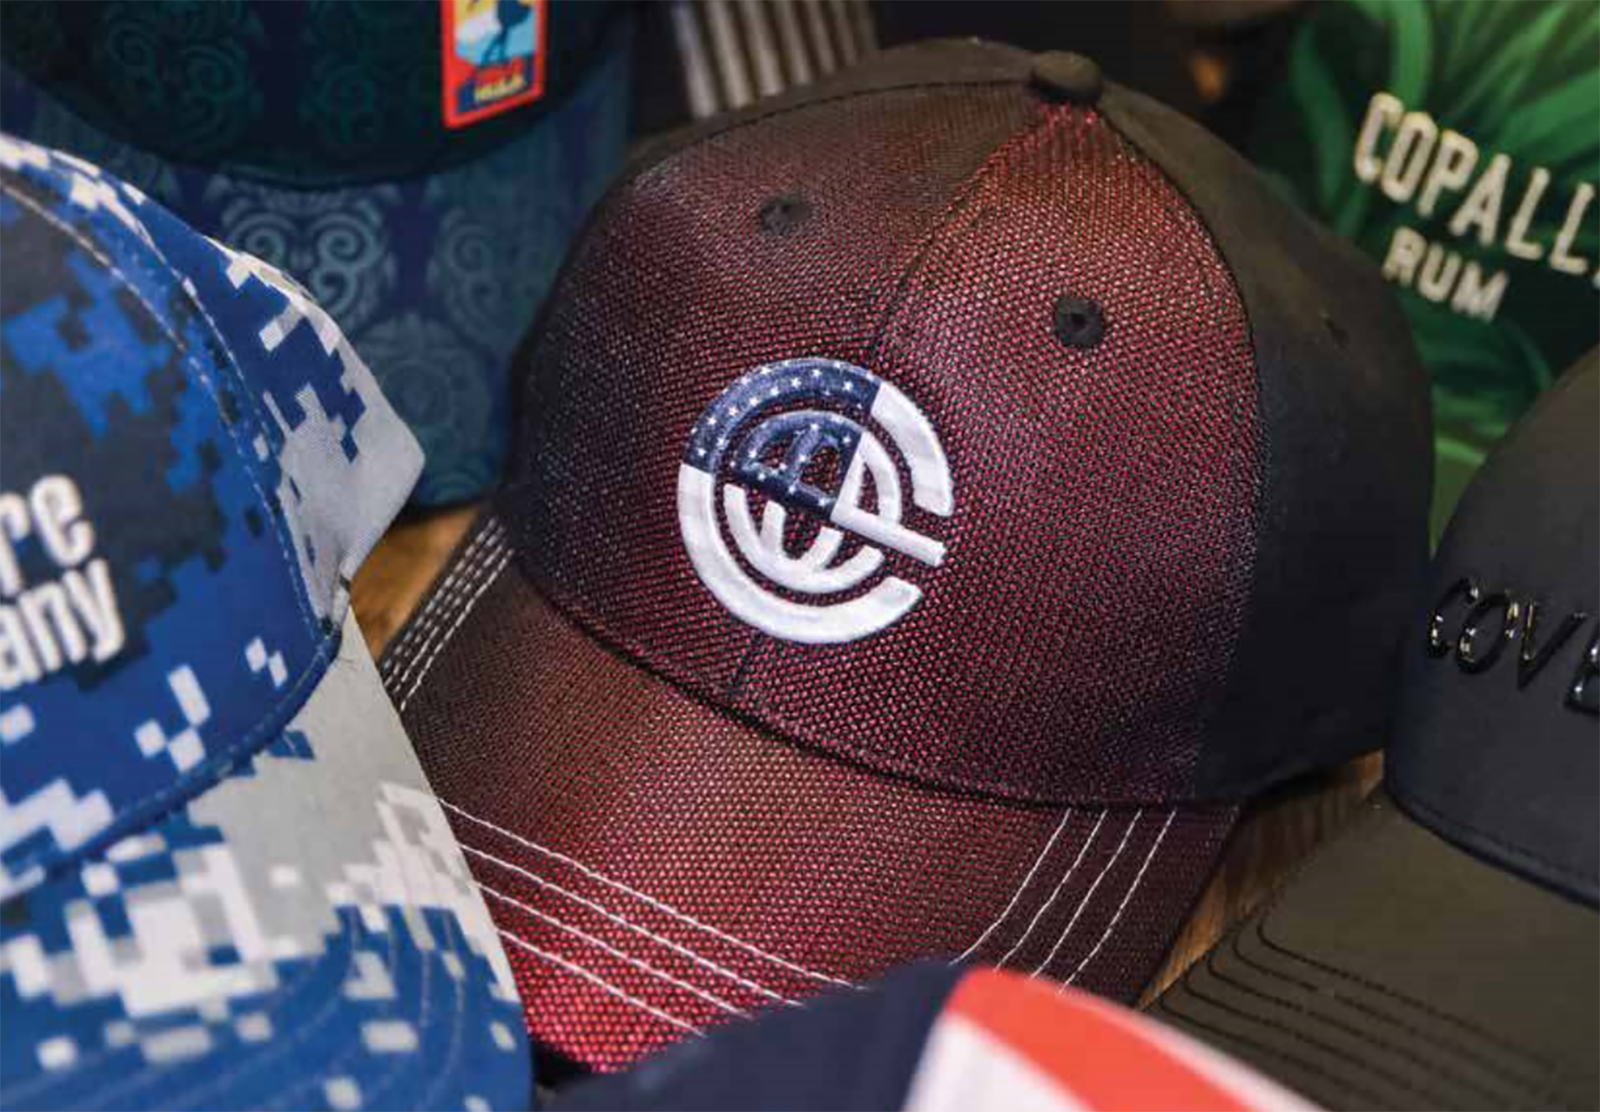 Featured image for custom cap blog post showing multiple hats in various colors and decoration options.